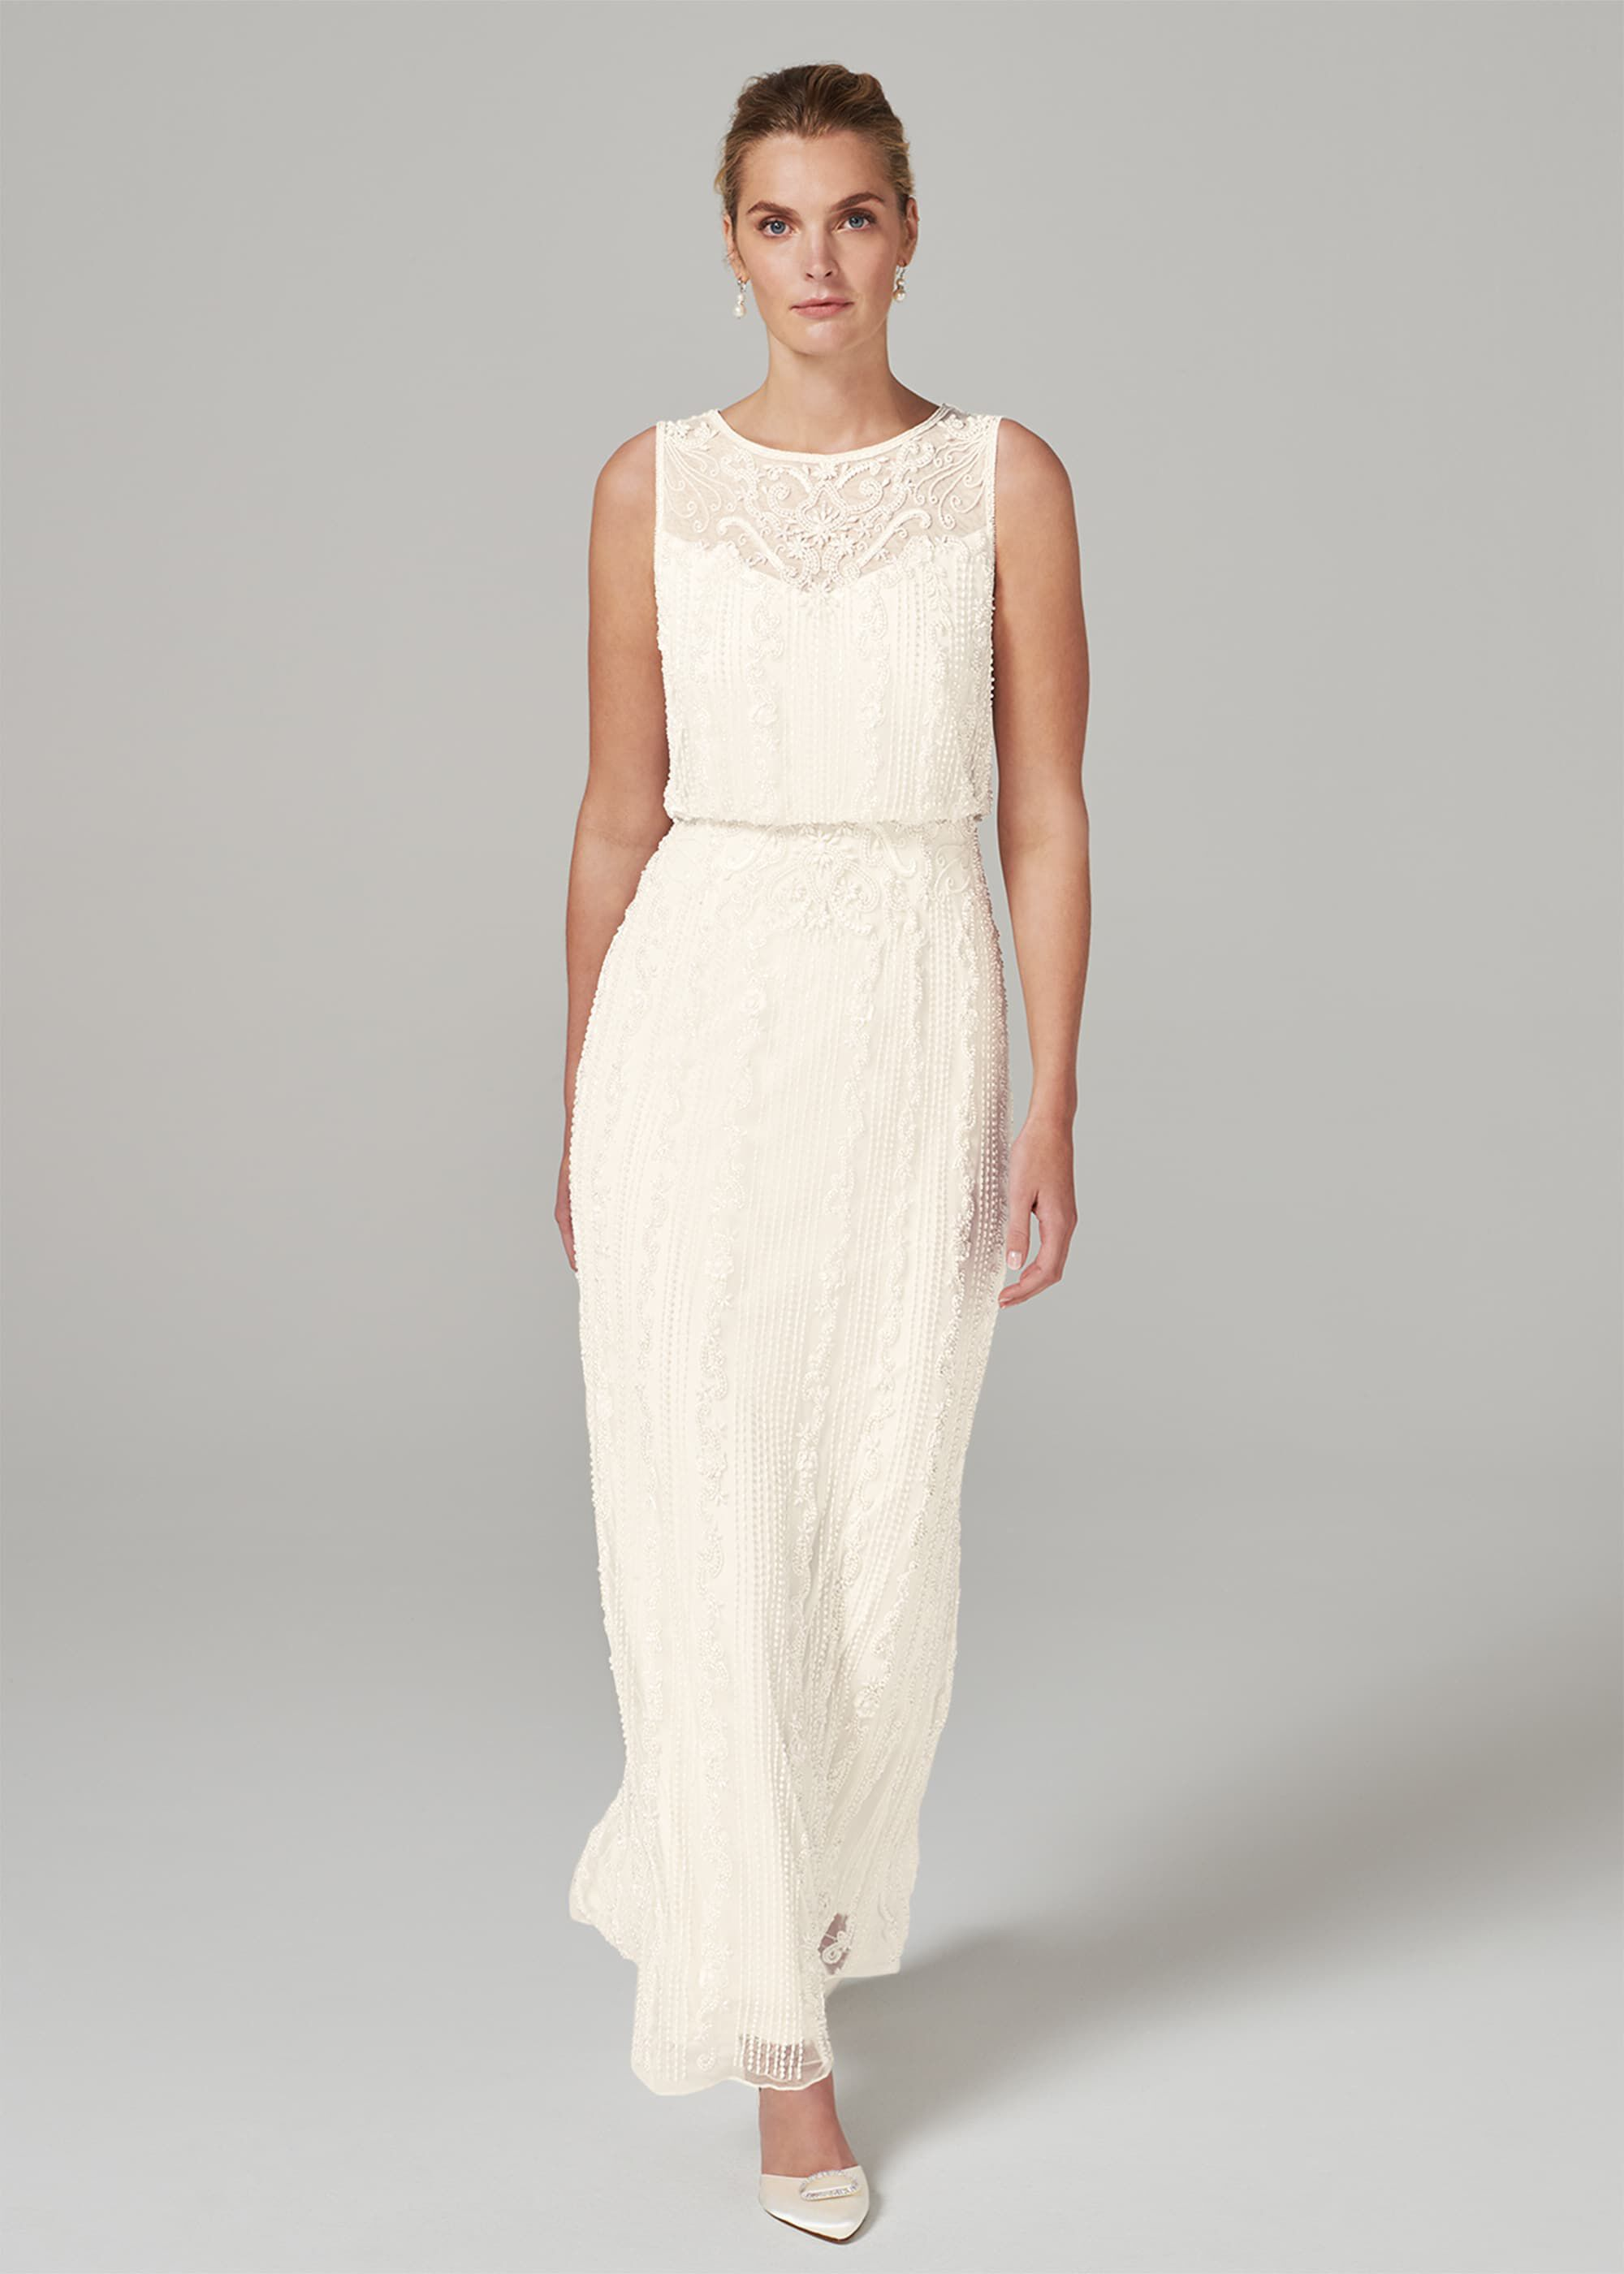 Phase Eight Evalina Embellished Wedding Dress, Cream, Maxi, Occasion Dress